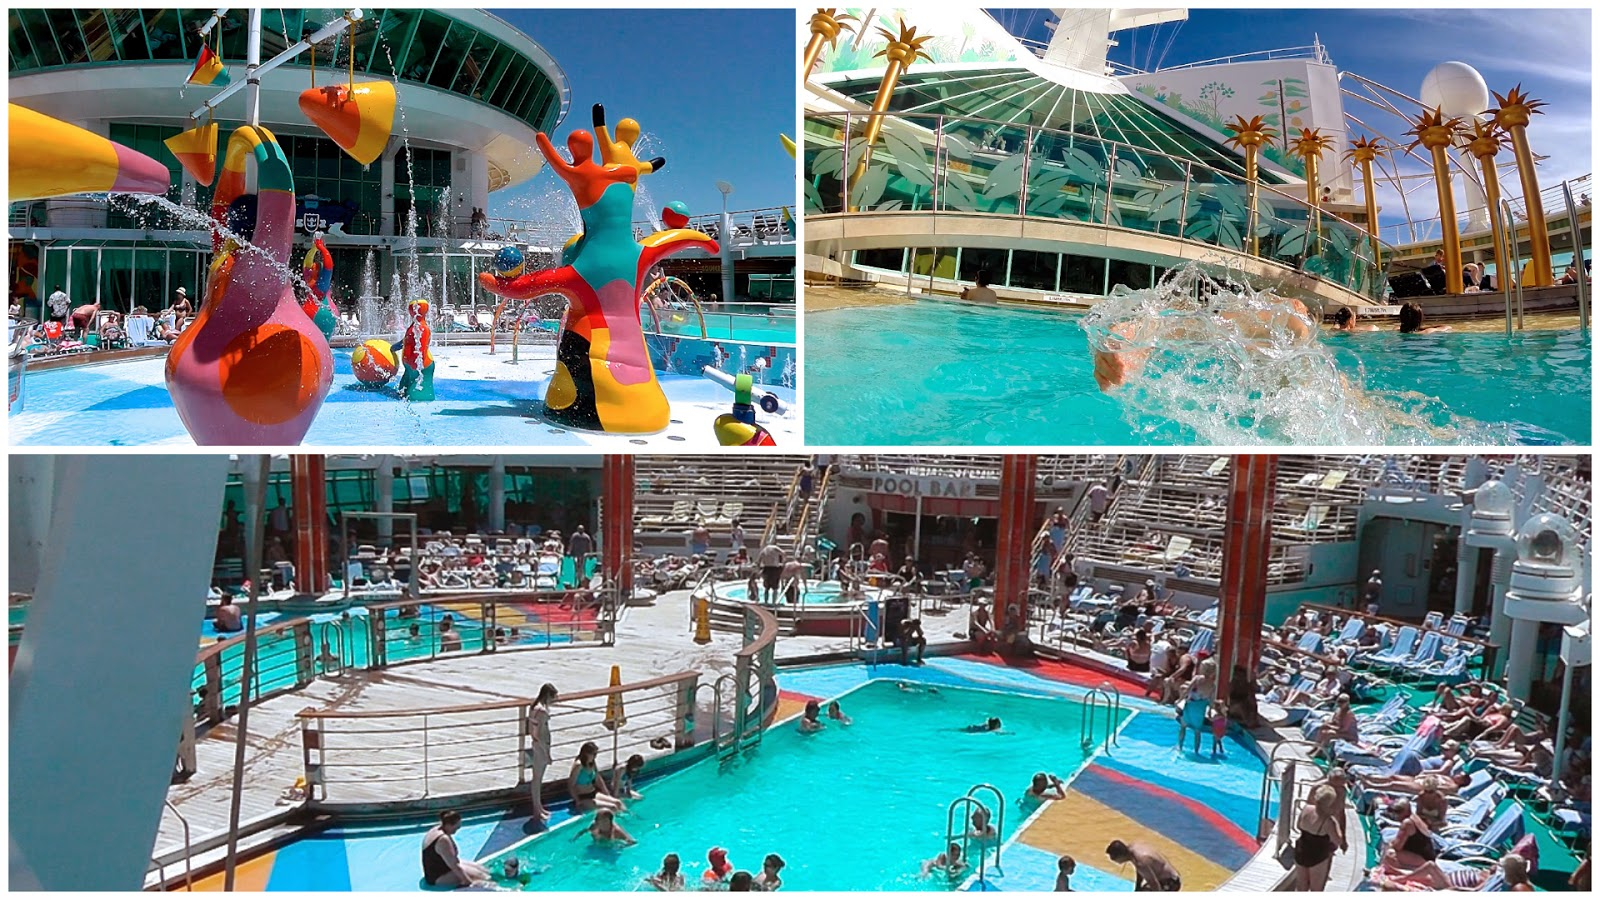 Pool areas onboard Independence of the Seas